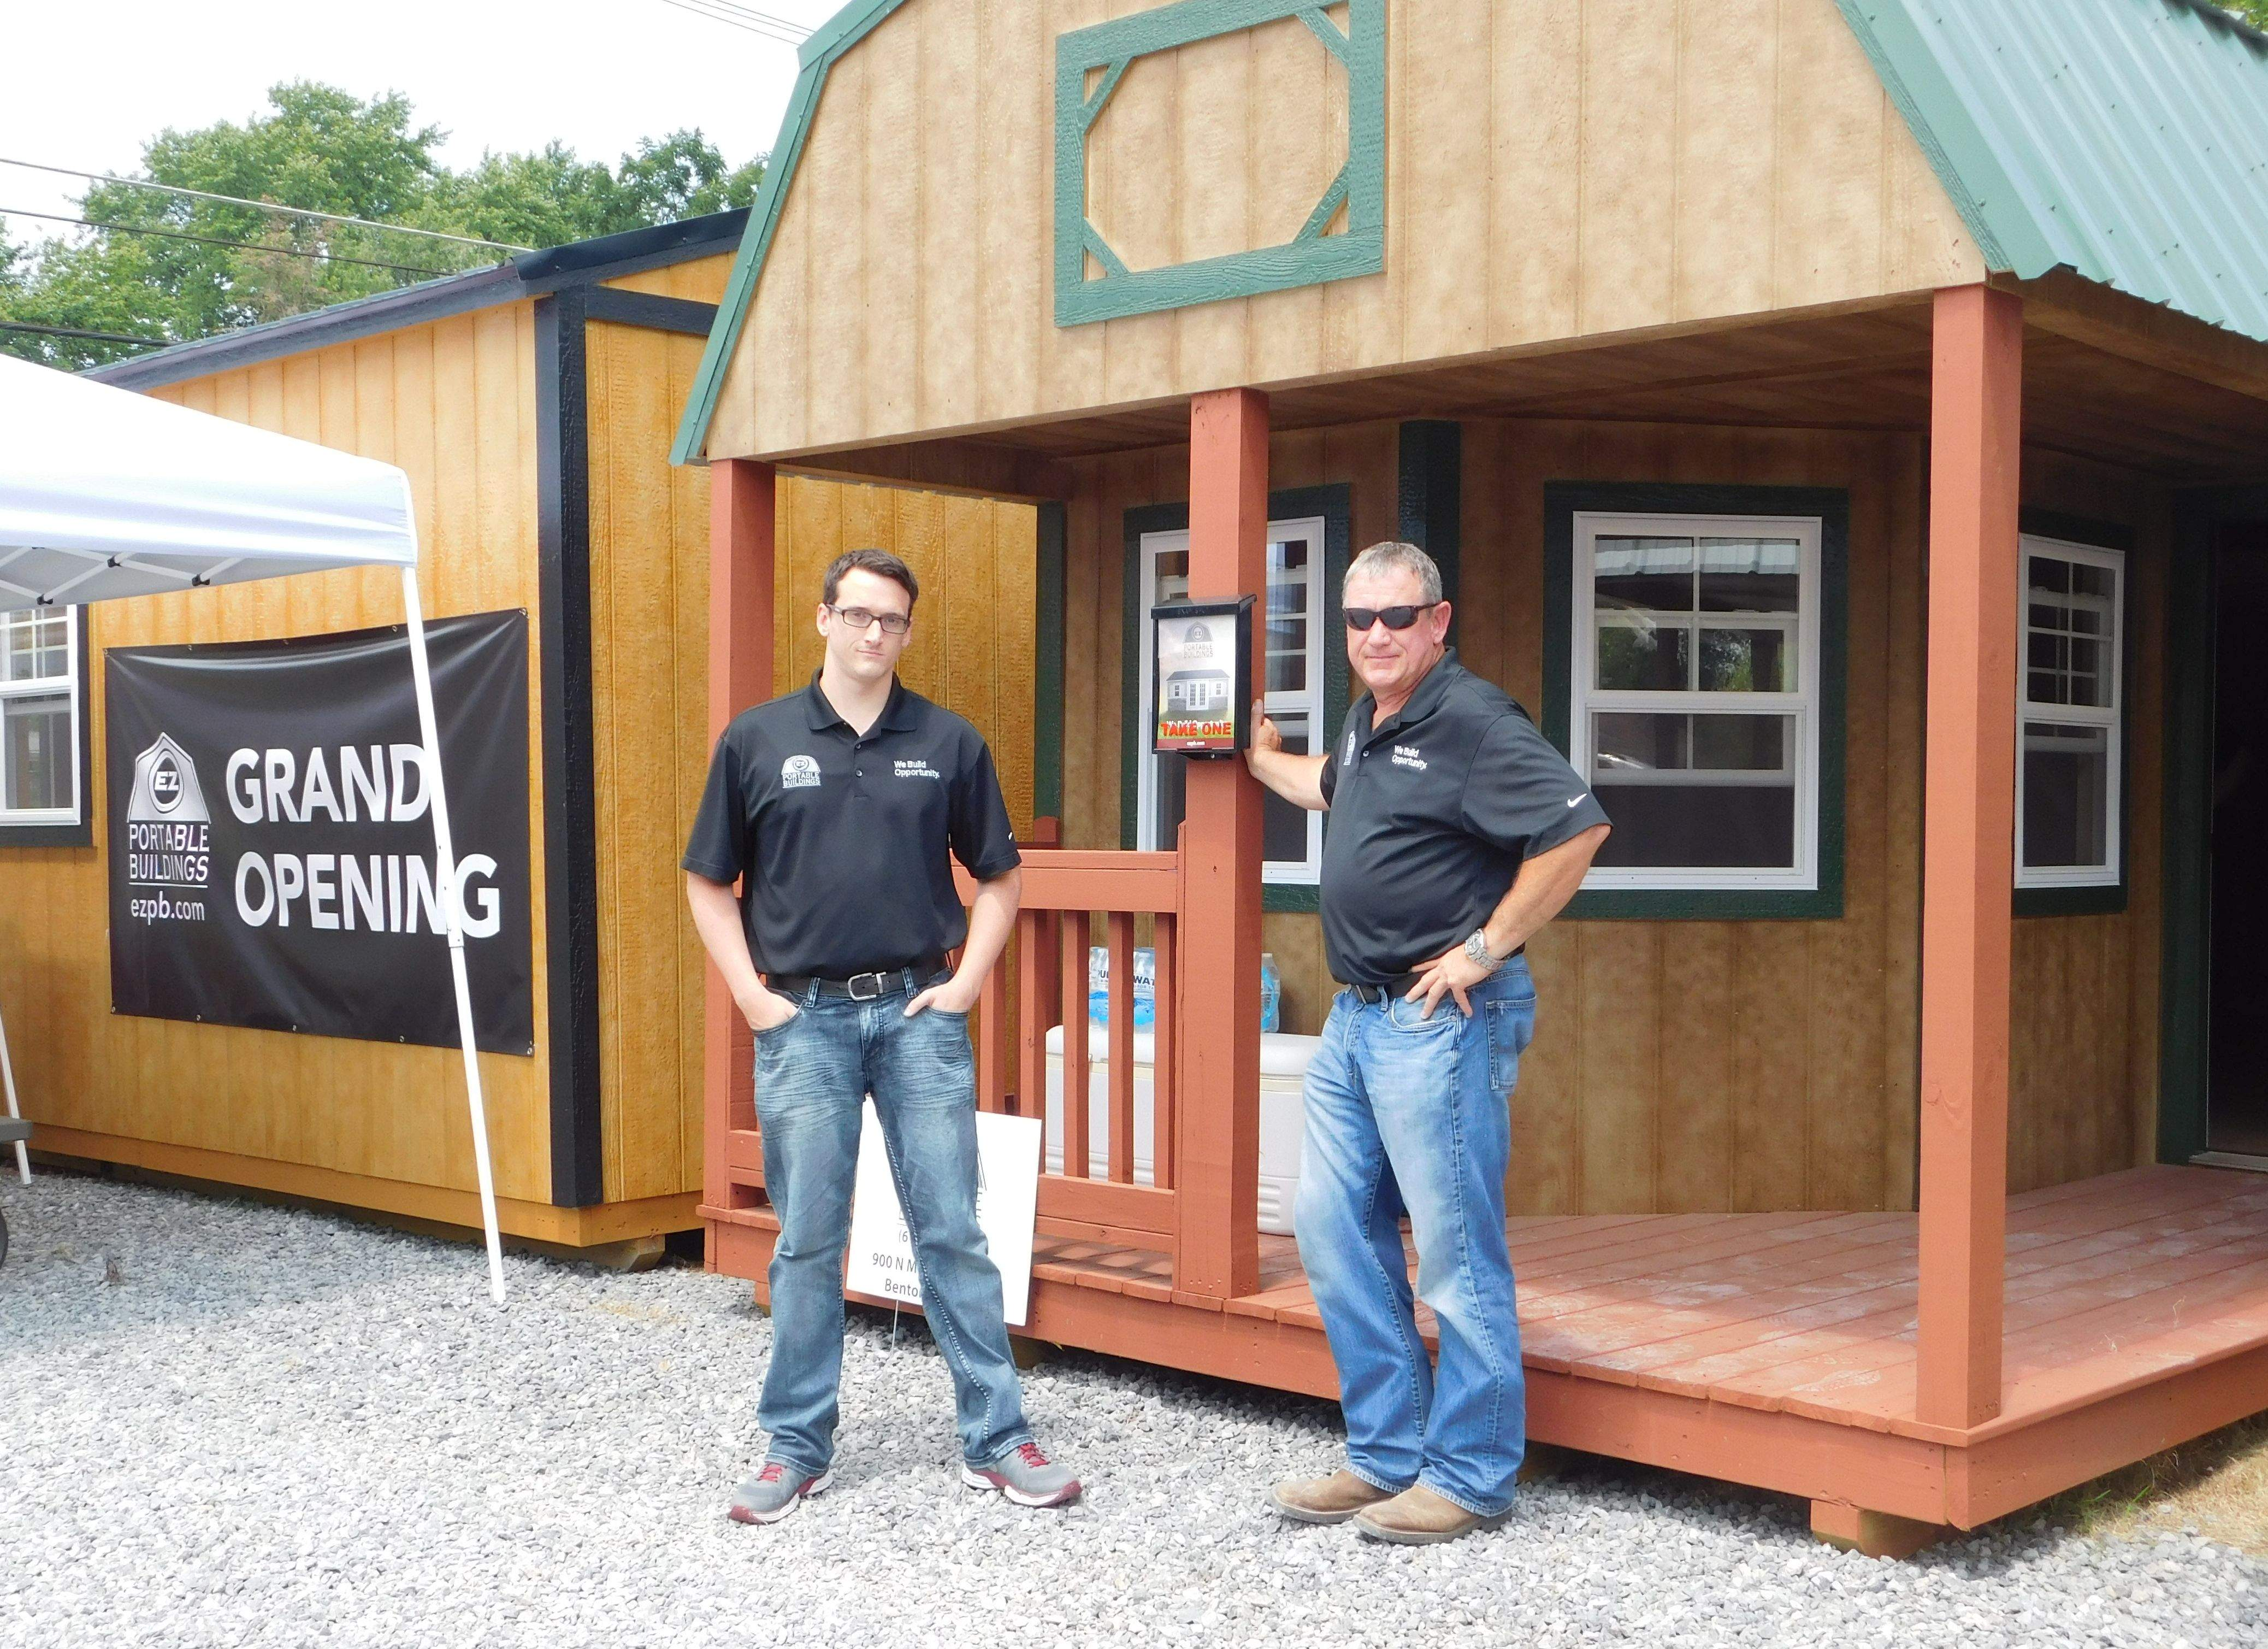 The 'tiny house' craze came to Benton on Saturday when EZ Portable Buildings and Tiny Homes held its grand opening and ribbon cutting. John Eaton (right) and his son, Tyler, own and operate the new business located at 900 N. McLeansboro St. Along with affordable financing, the Eatons also offer free delivery and set up within a 50-mile radius.